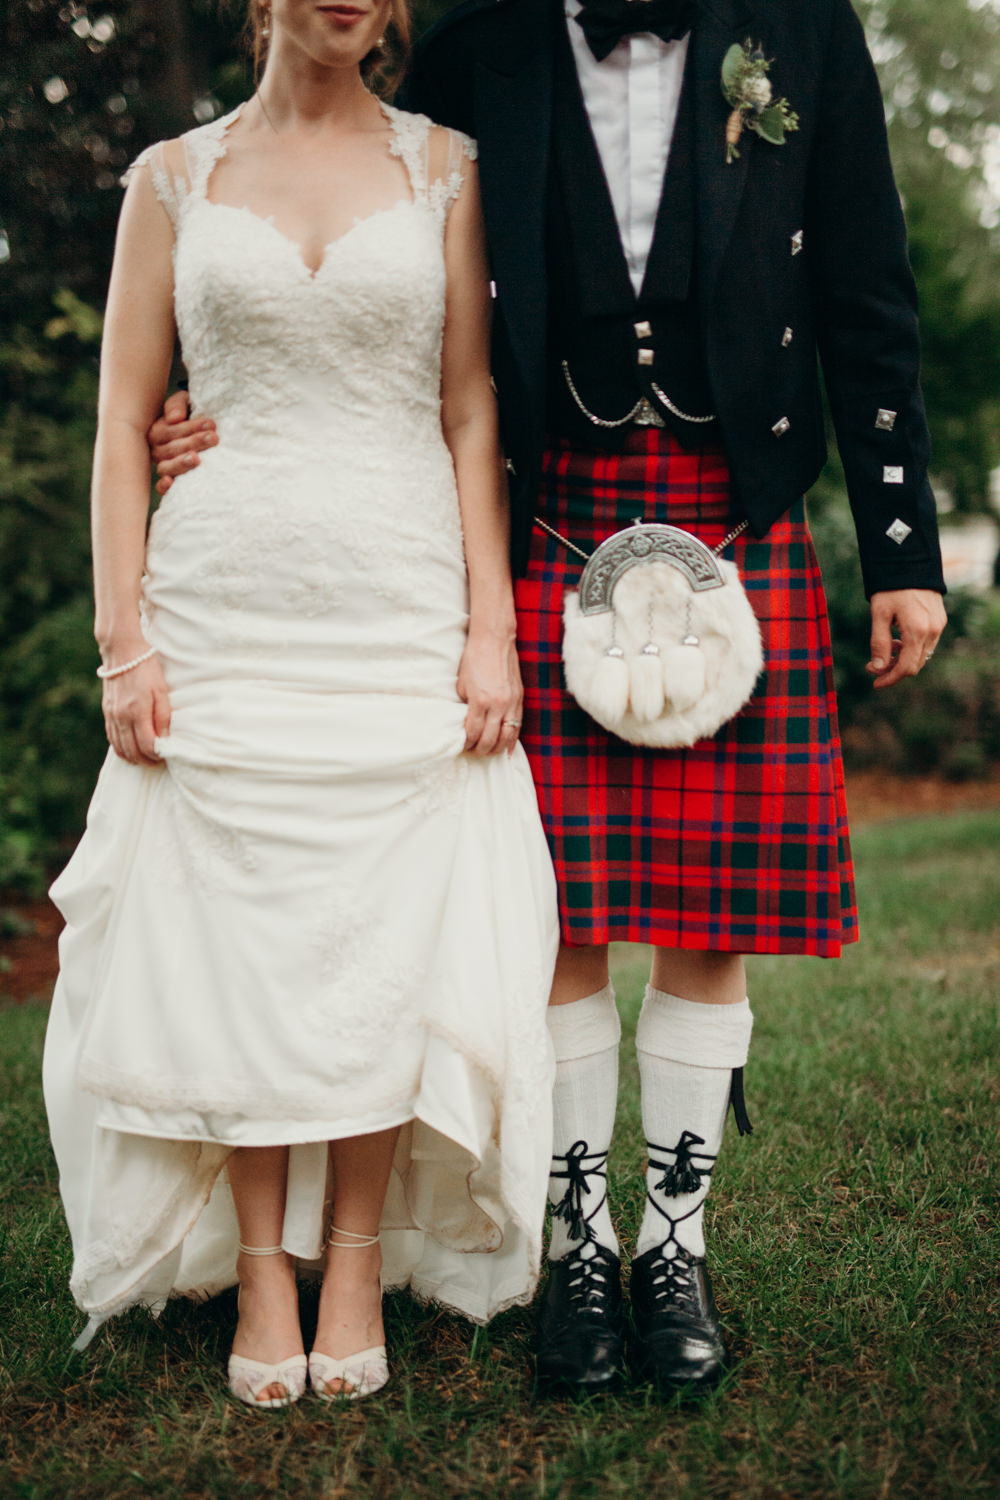 scottishwedding-2068.jpg